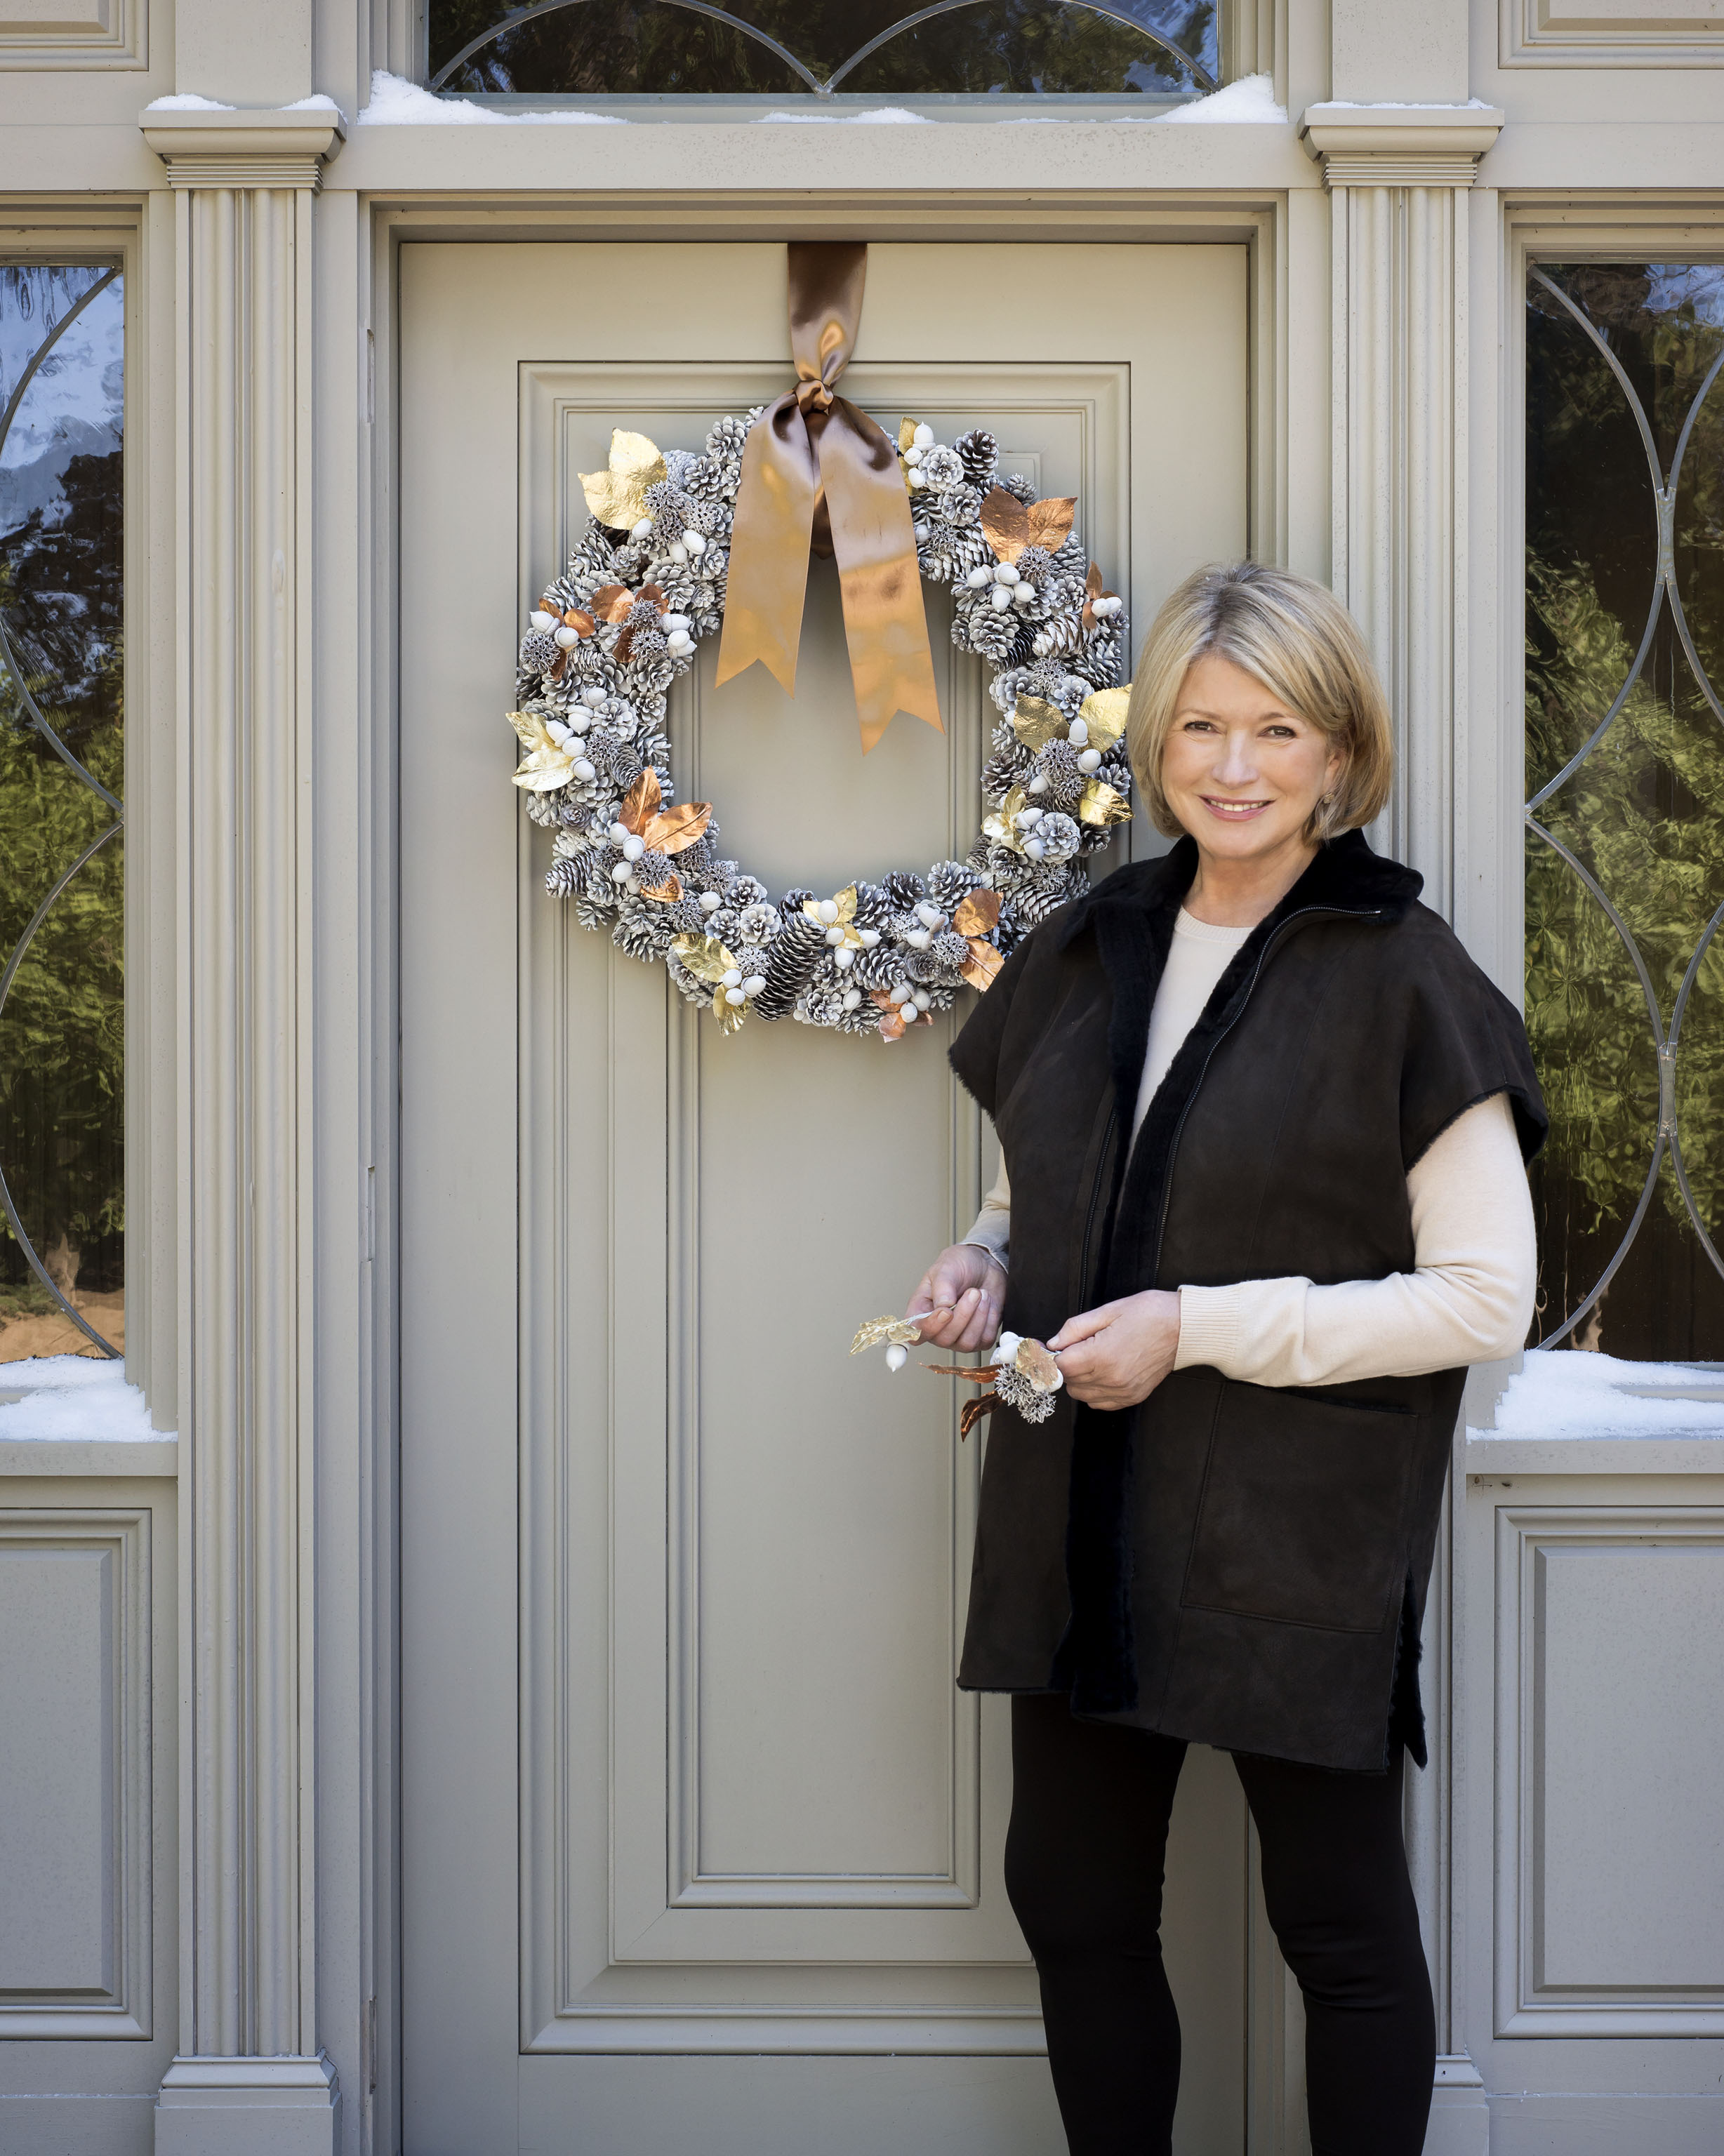 How To Hang A Wreath Without Making Holes In The Door Martha Stewart